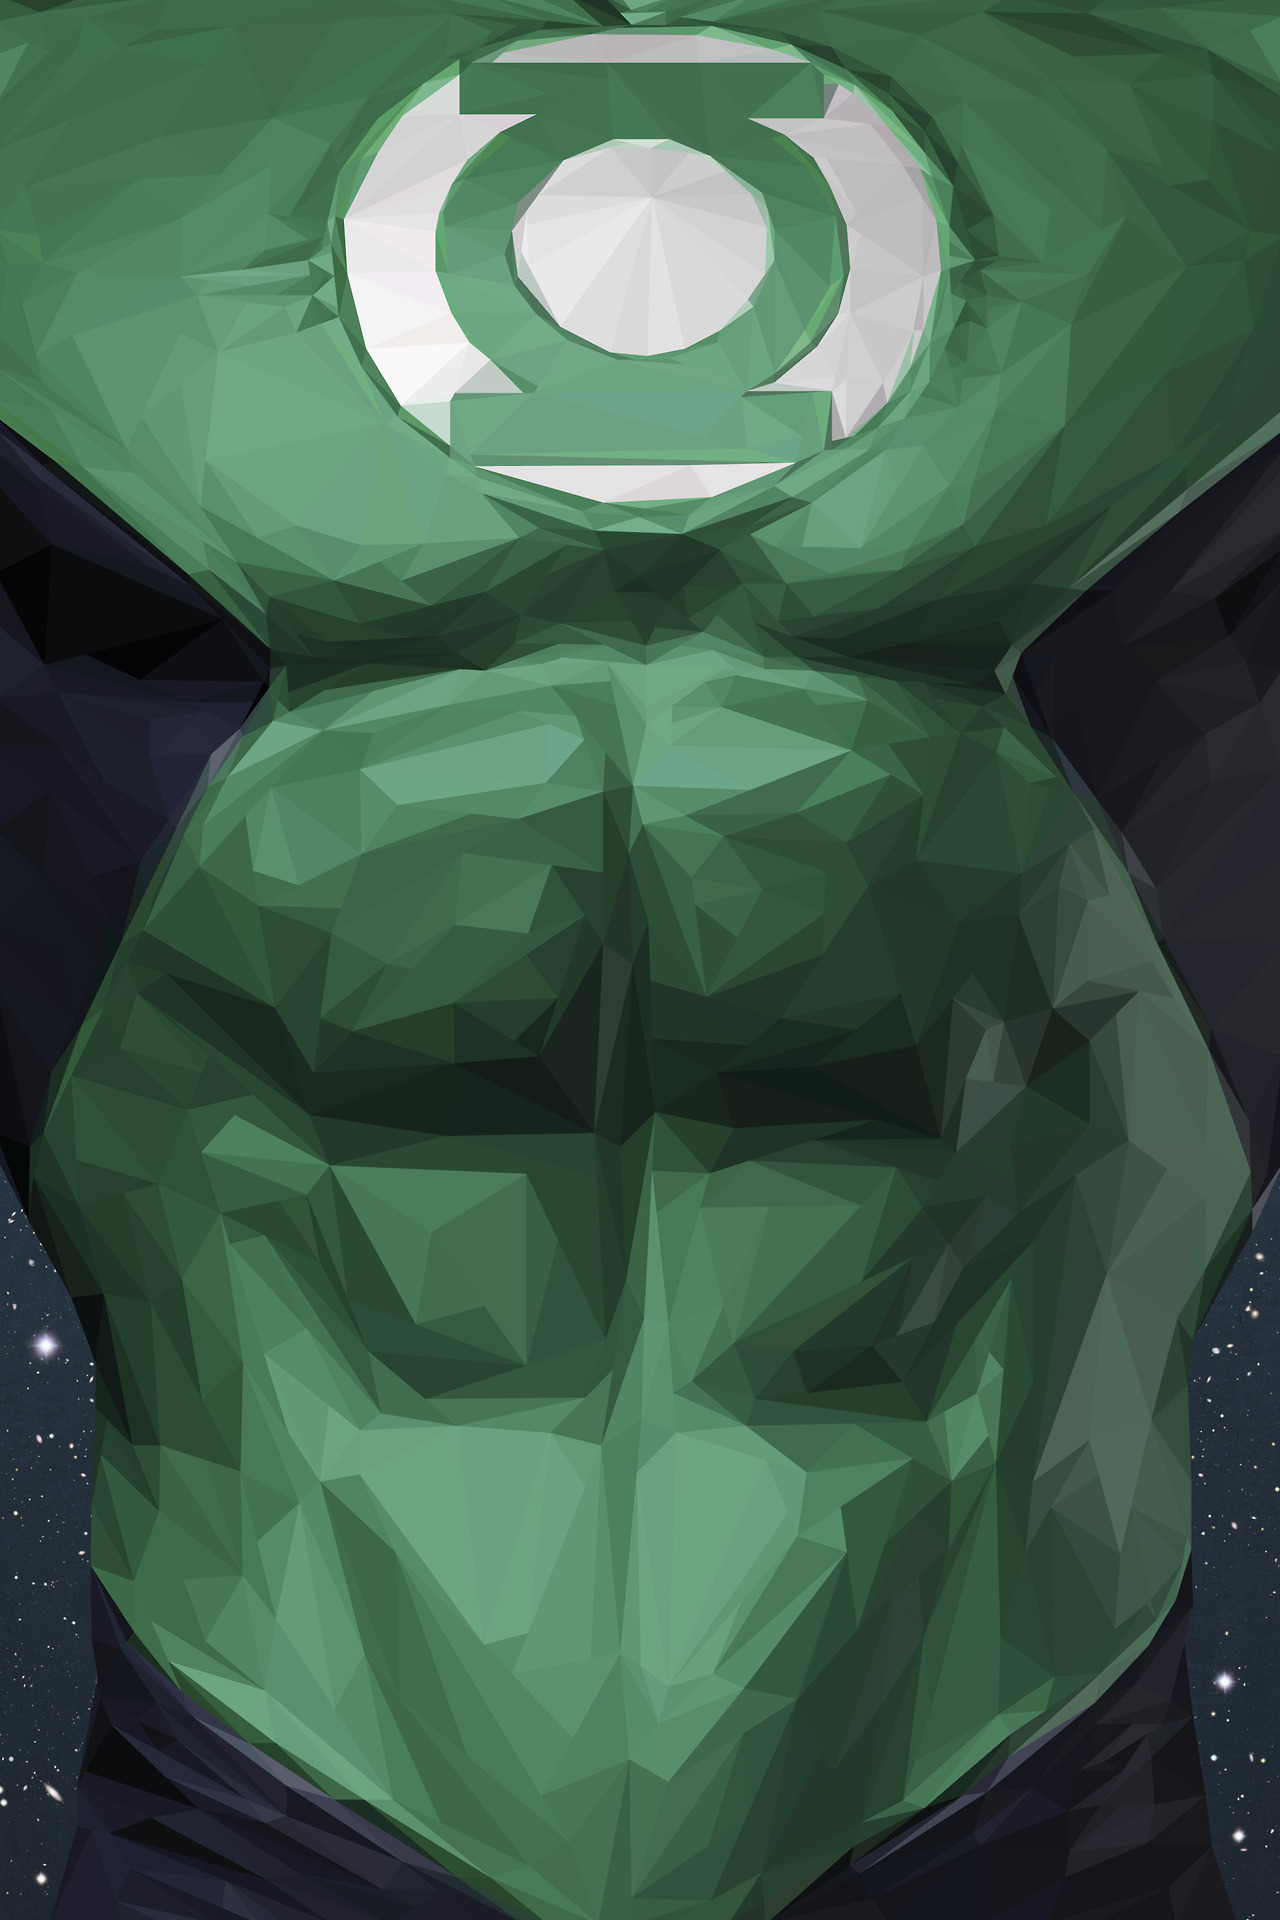 simon-delart-superhero-triangle-illustrations-green-lantern